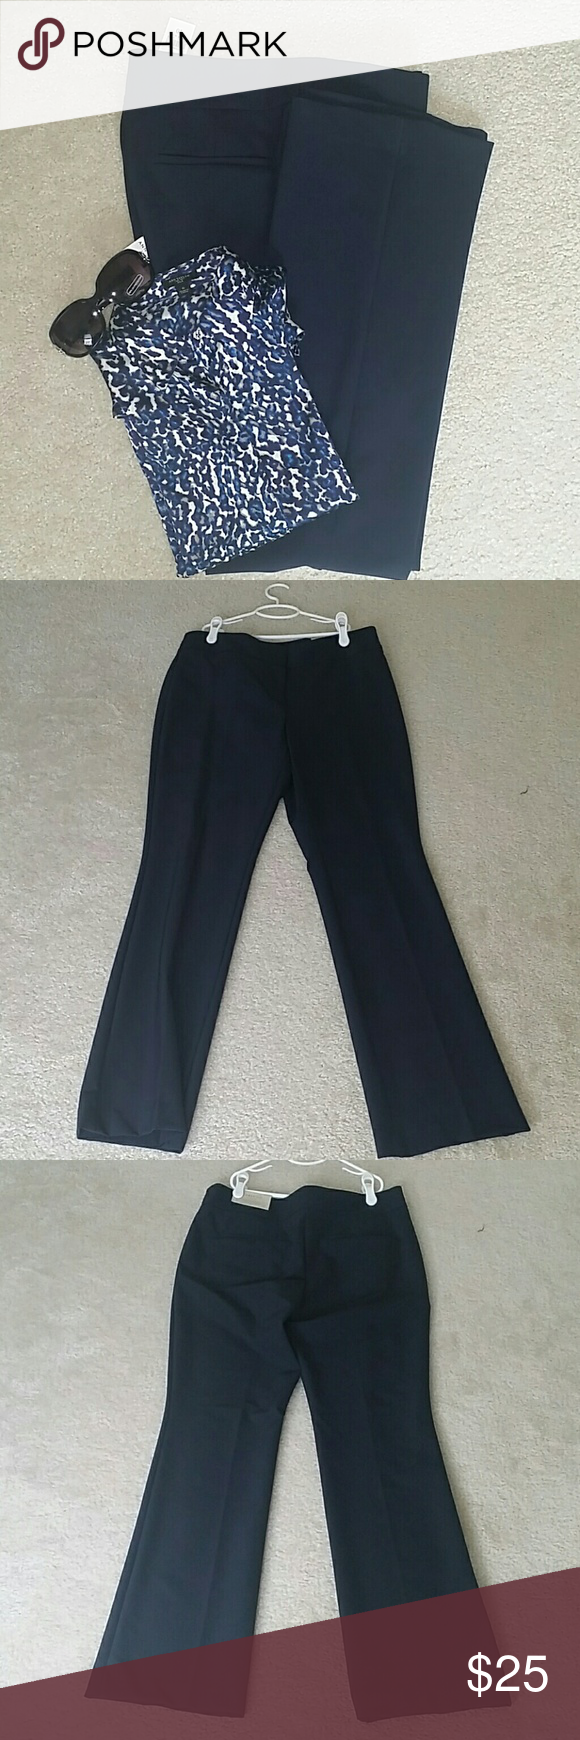 NWT Ann Taylor size 10 suit pants 👉Description : Curvy Fit l Fitted at waist and curved through the hip l sits just below natural waist l super comfortable l slim to the knee with slightly flared legs . 👉Material : 88% nylon, 12 % spandex. 👉Color : Navy blue.  👉Condition : Brand new with tags. 👉Measurements : Will be provided on request. 👉Discount with bundles. No trades 🚫 Ann Taylor Pants